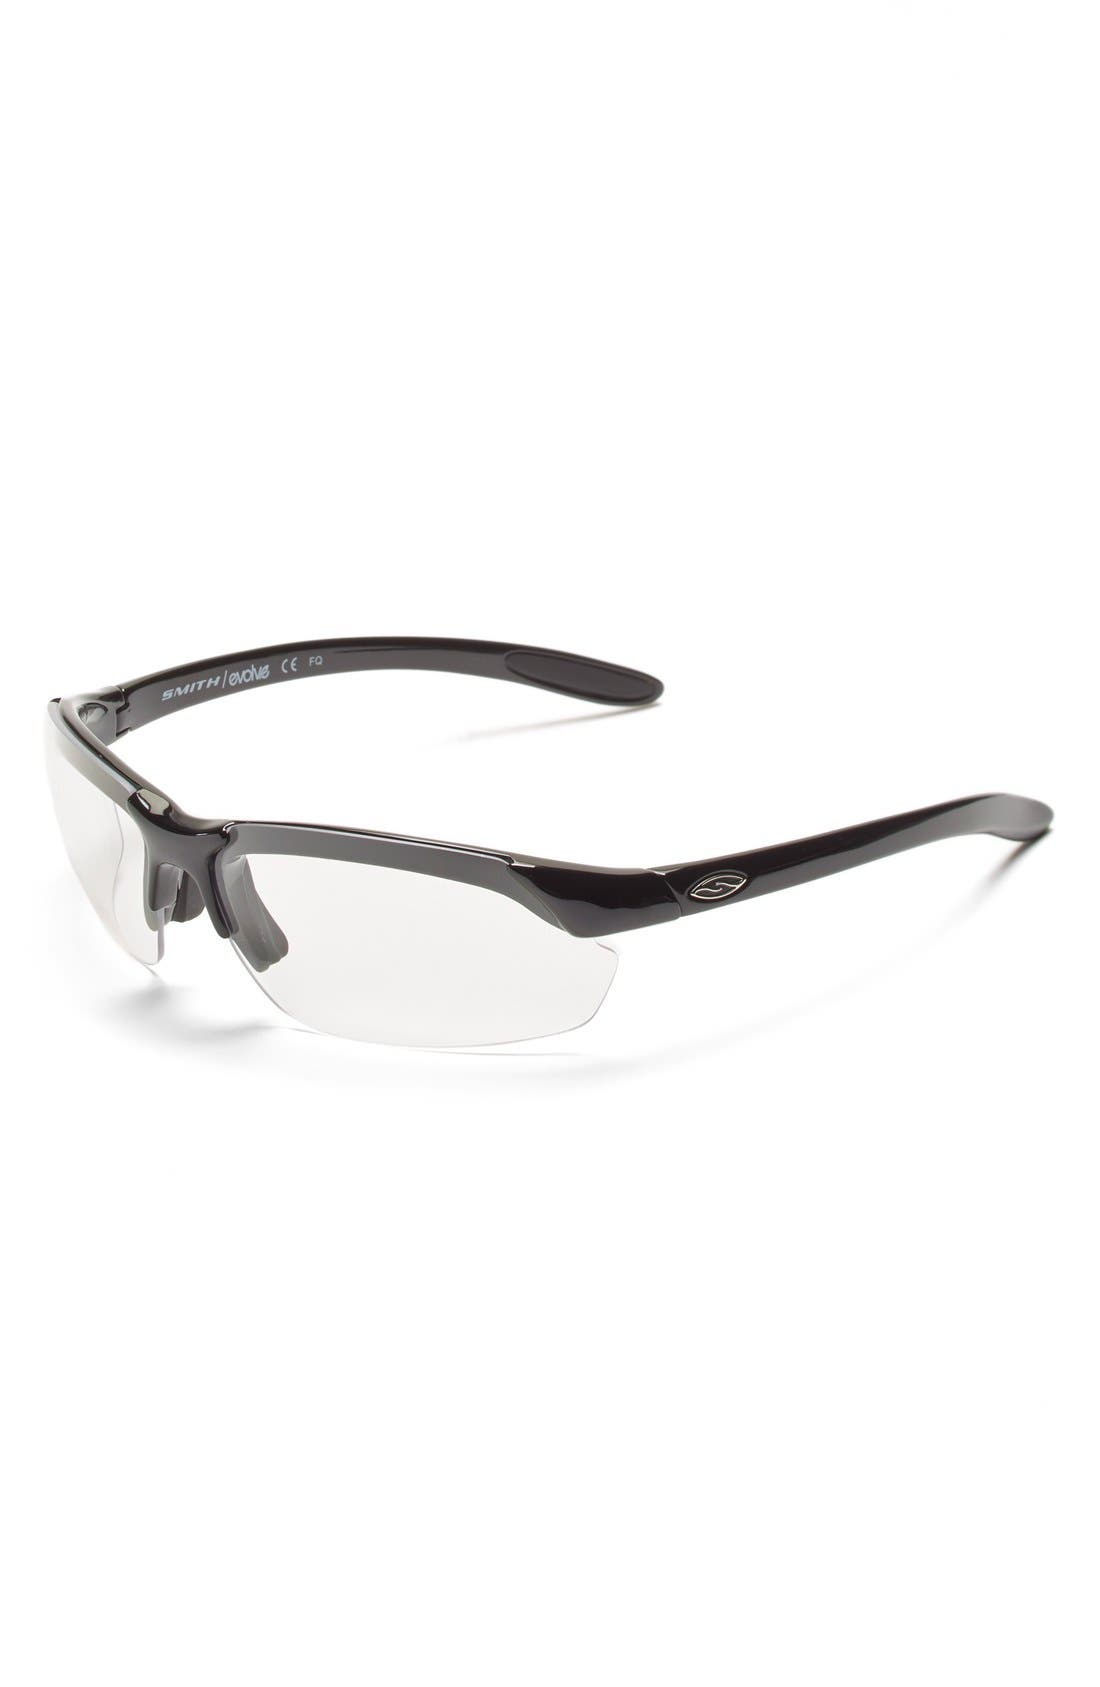 'Parallel Max' 65mm Polarized Sunglasses,                             Alternate thumbnail 3, color,                             Black/ Polar Grey/ Clear